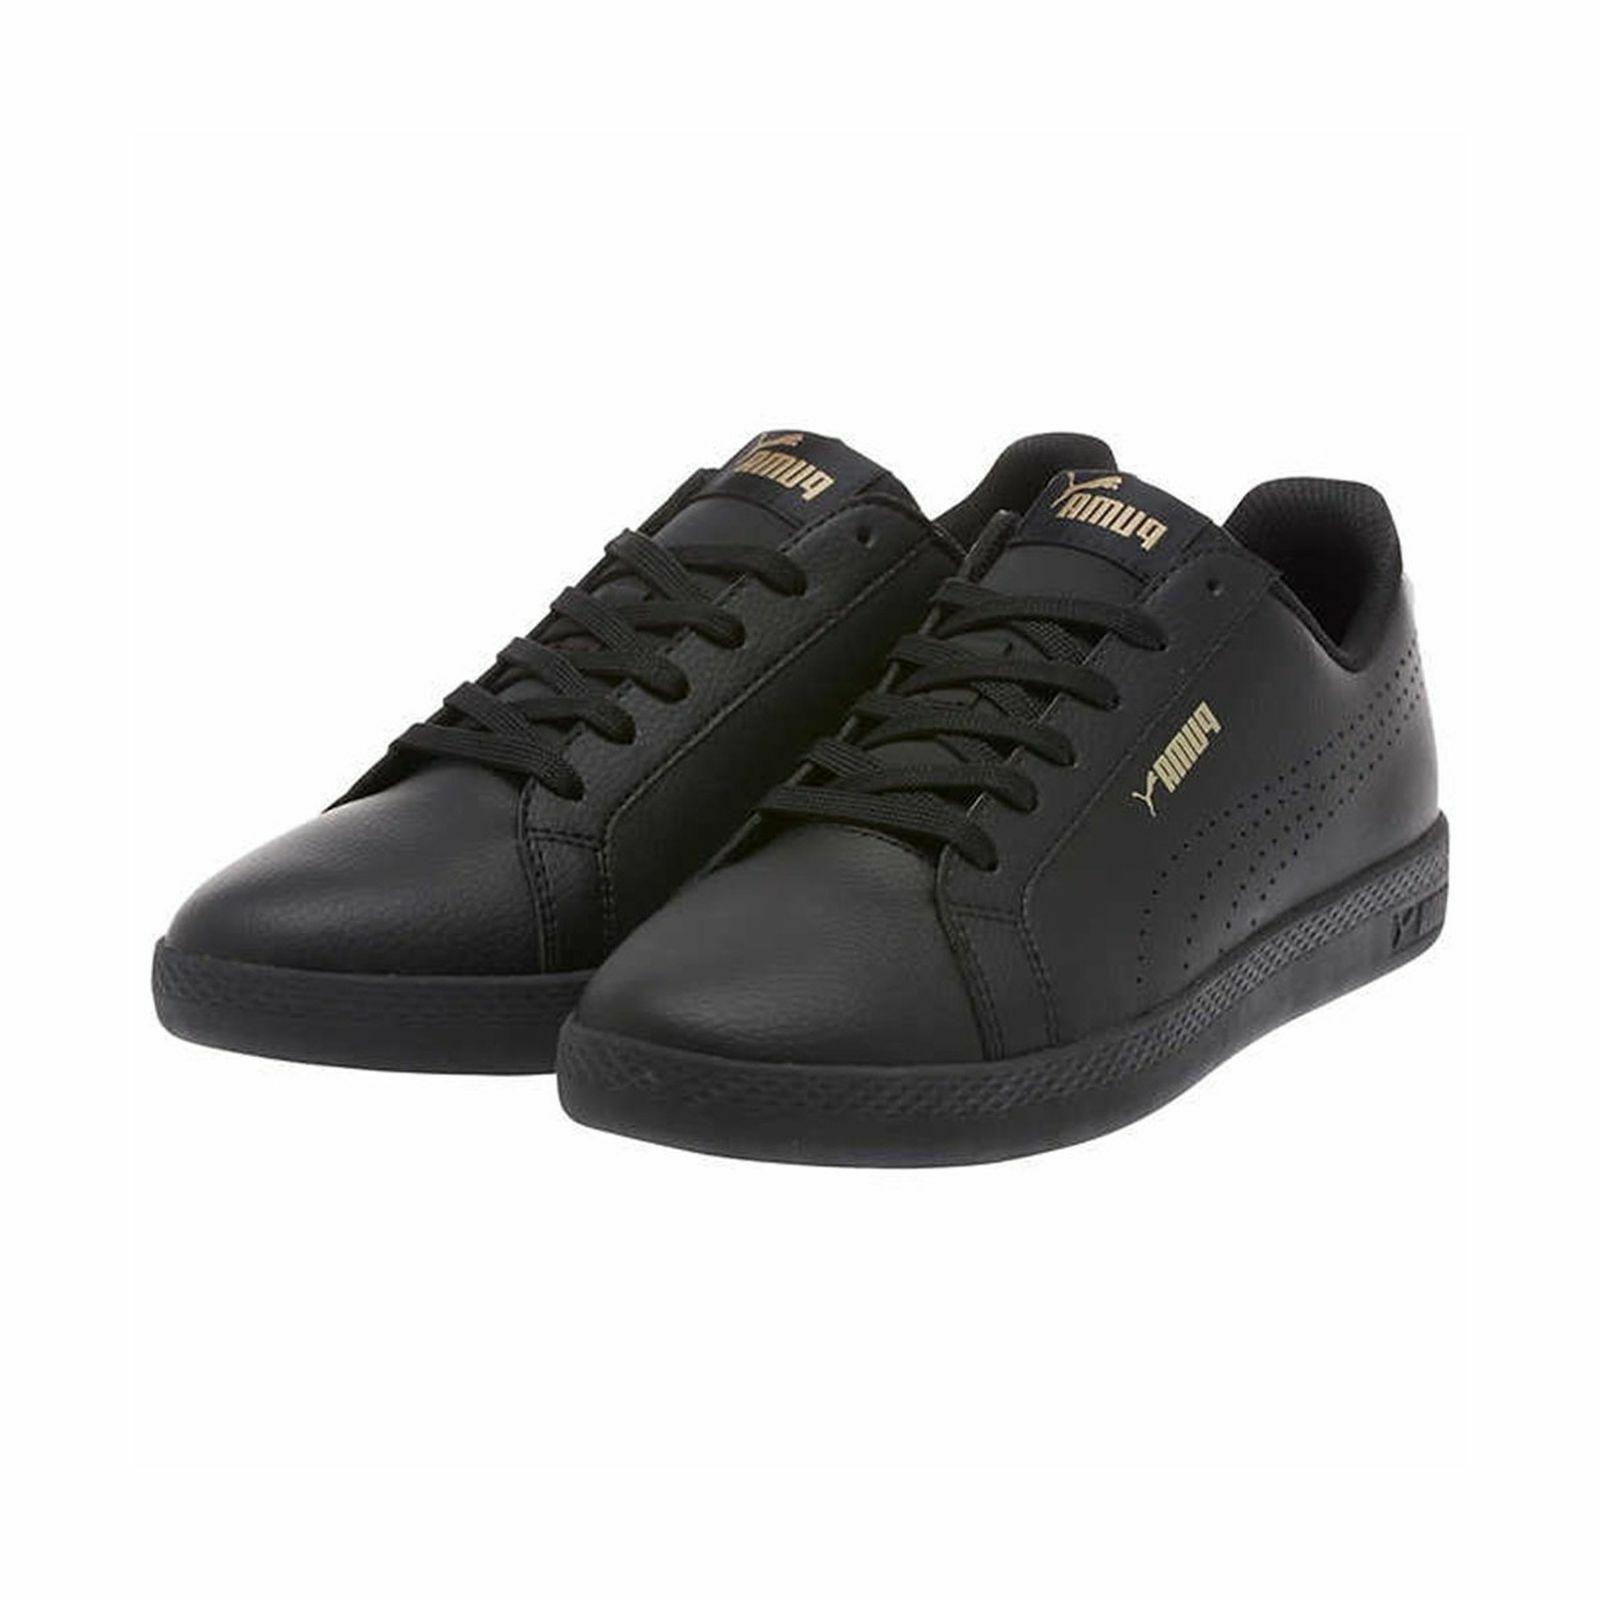 PUMA Women's Smash Leather Sneakers Shoes